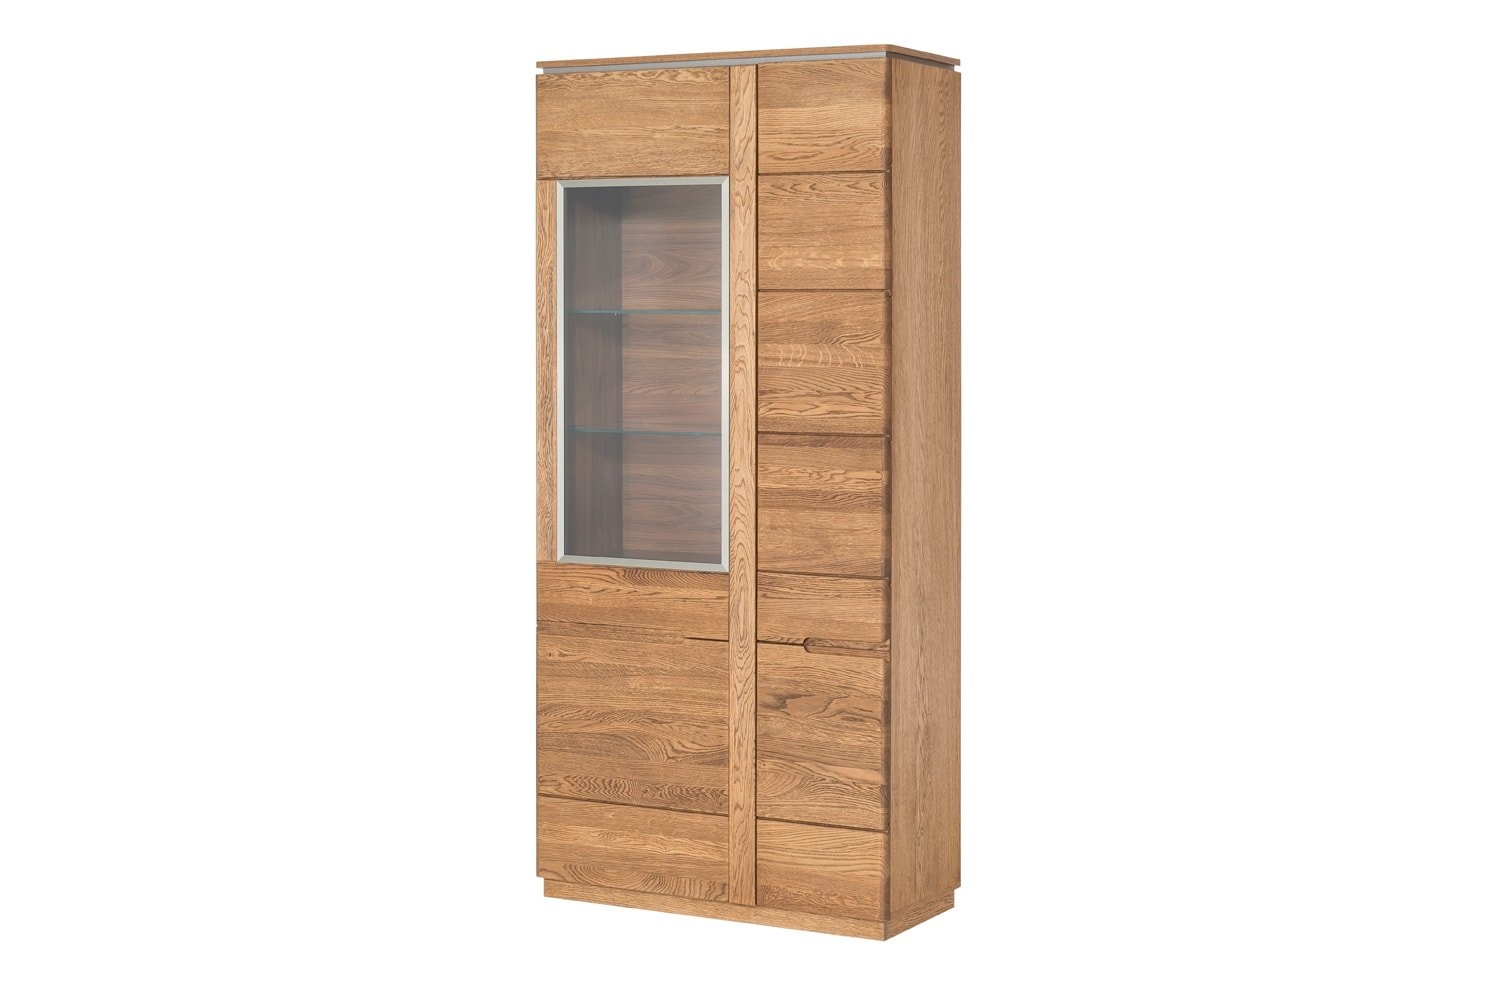 Vitrina din lemn si furnir, cu 2 usi Big Montenegro 12 Oak, l90xA42xH198 cm imagine